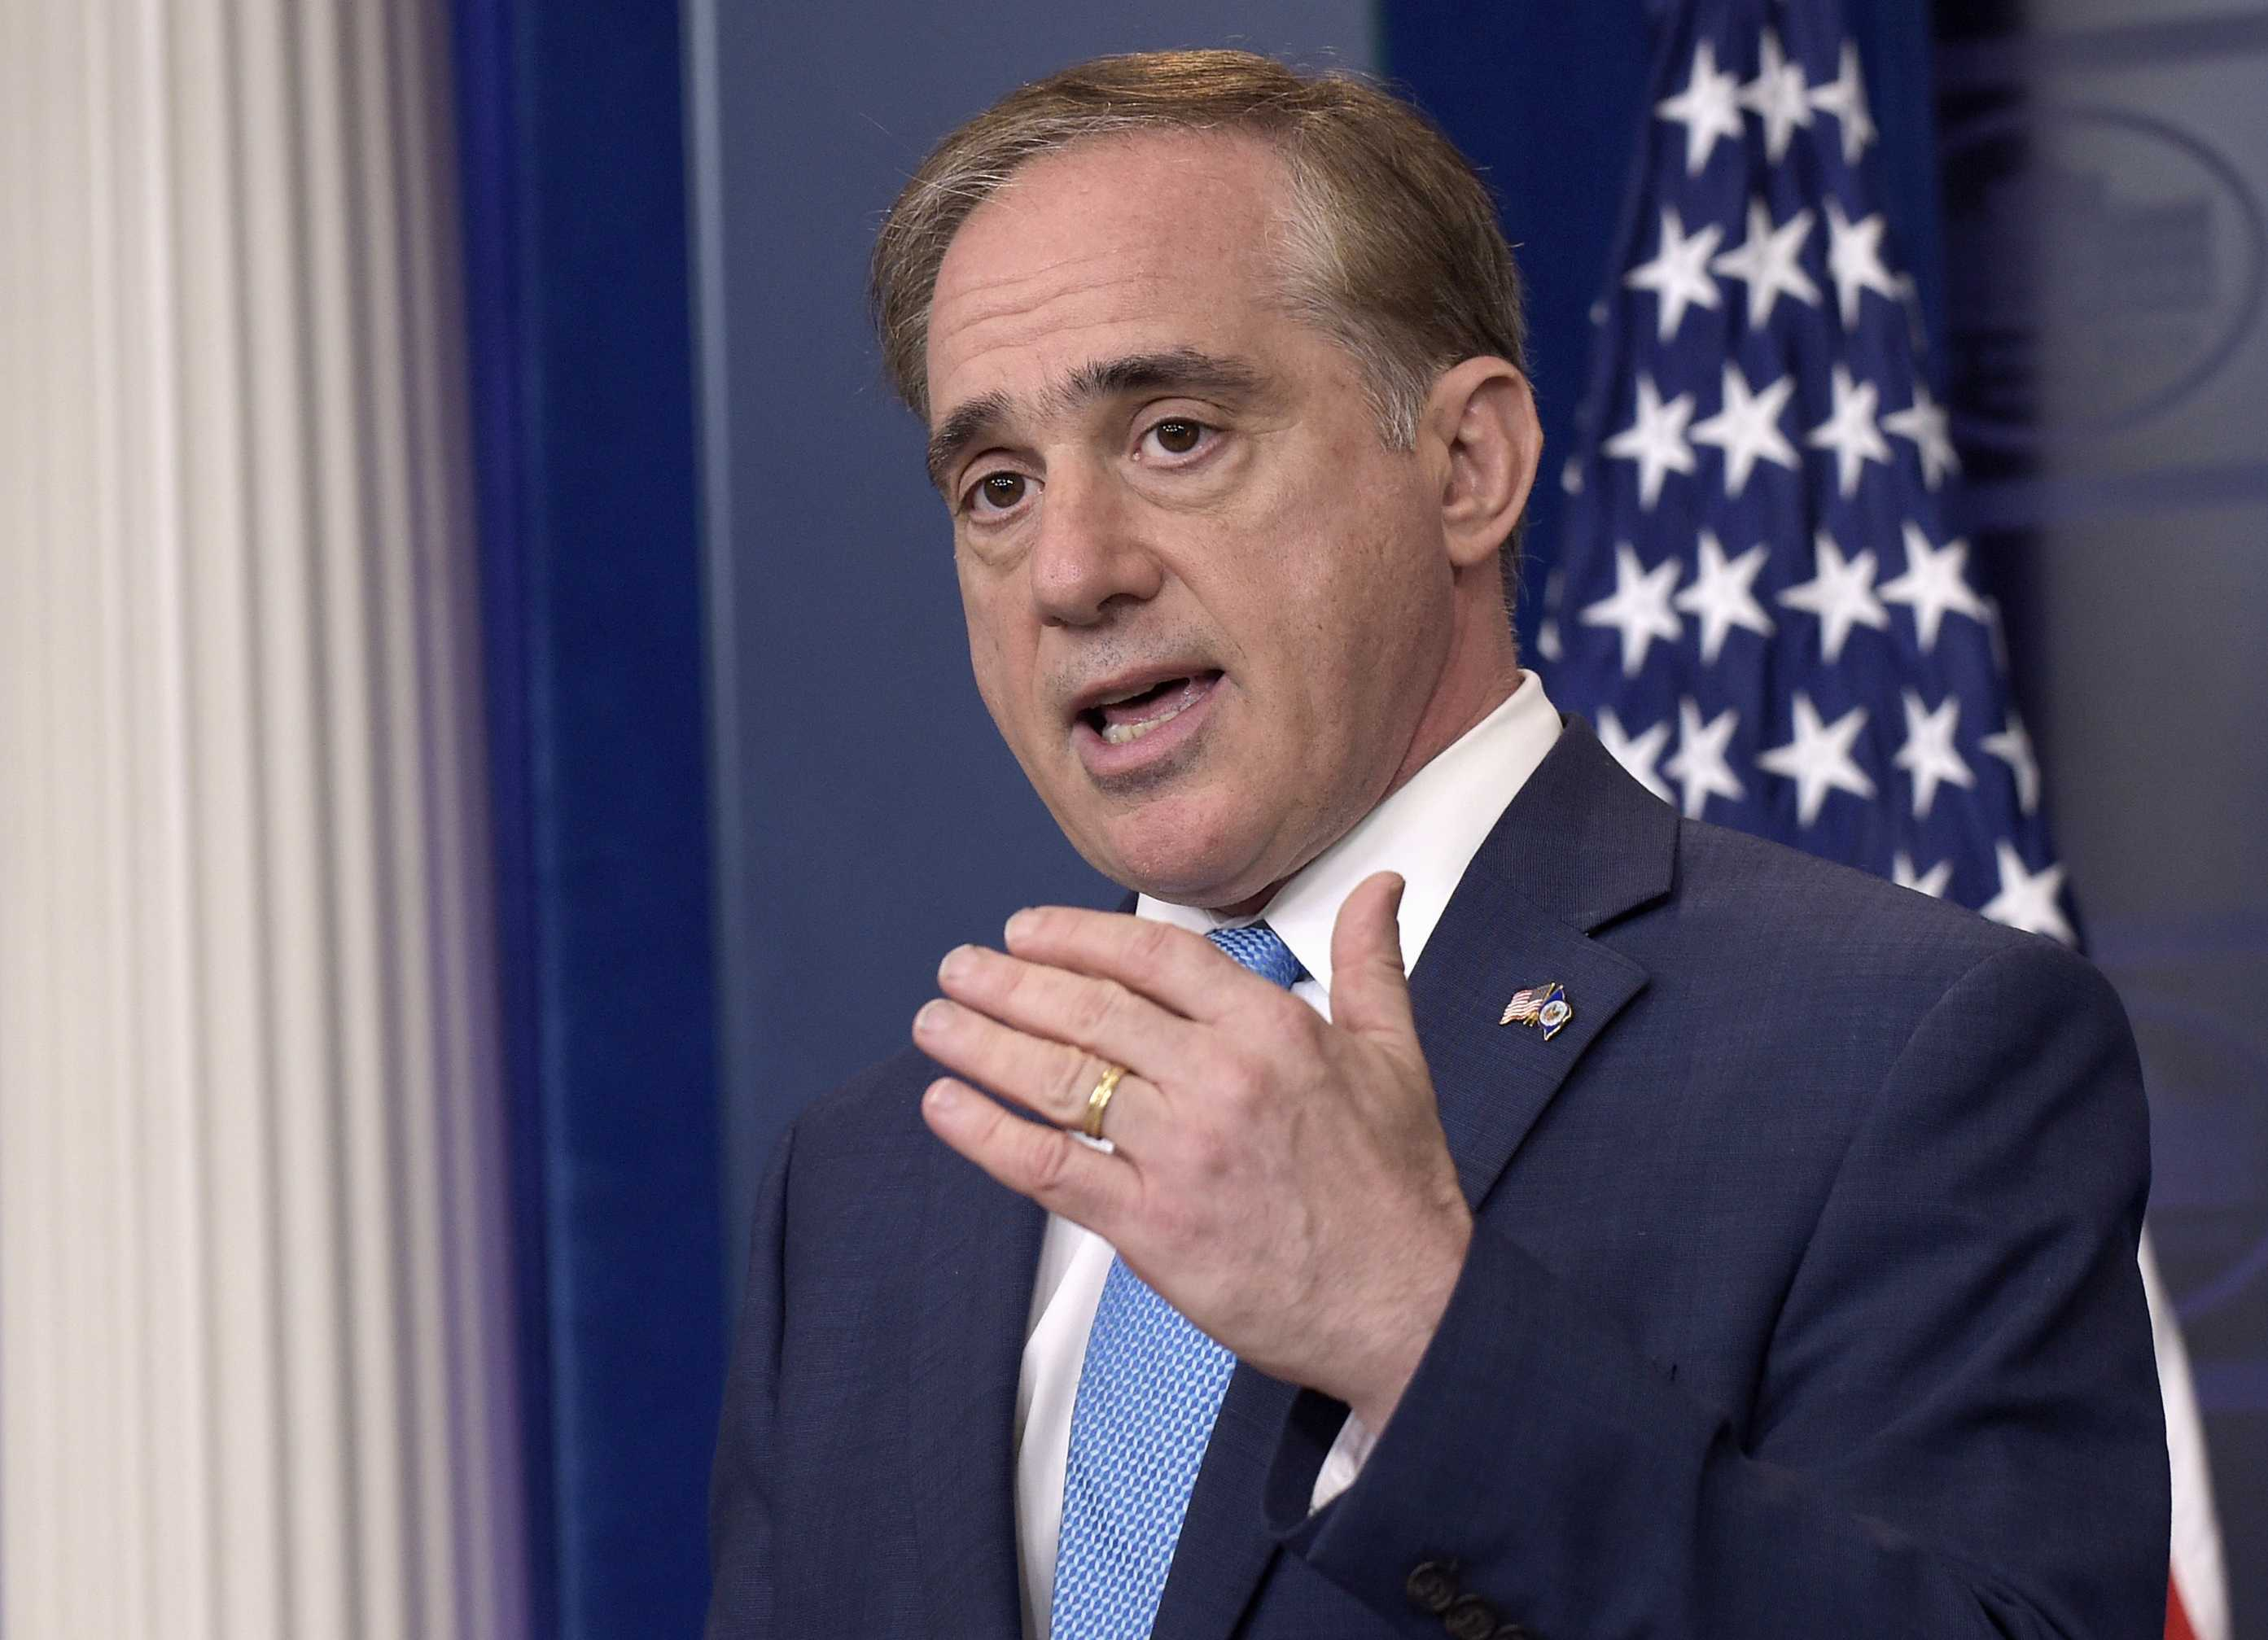 VA Secretary Shulkin 'Misused' Taxpayer Money for Euro Trip: Watchdog